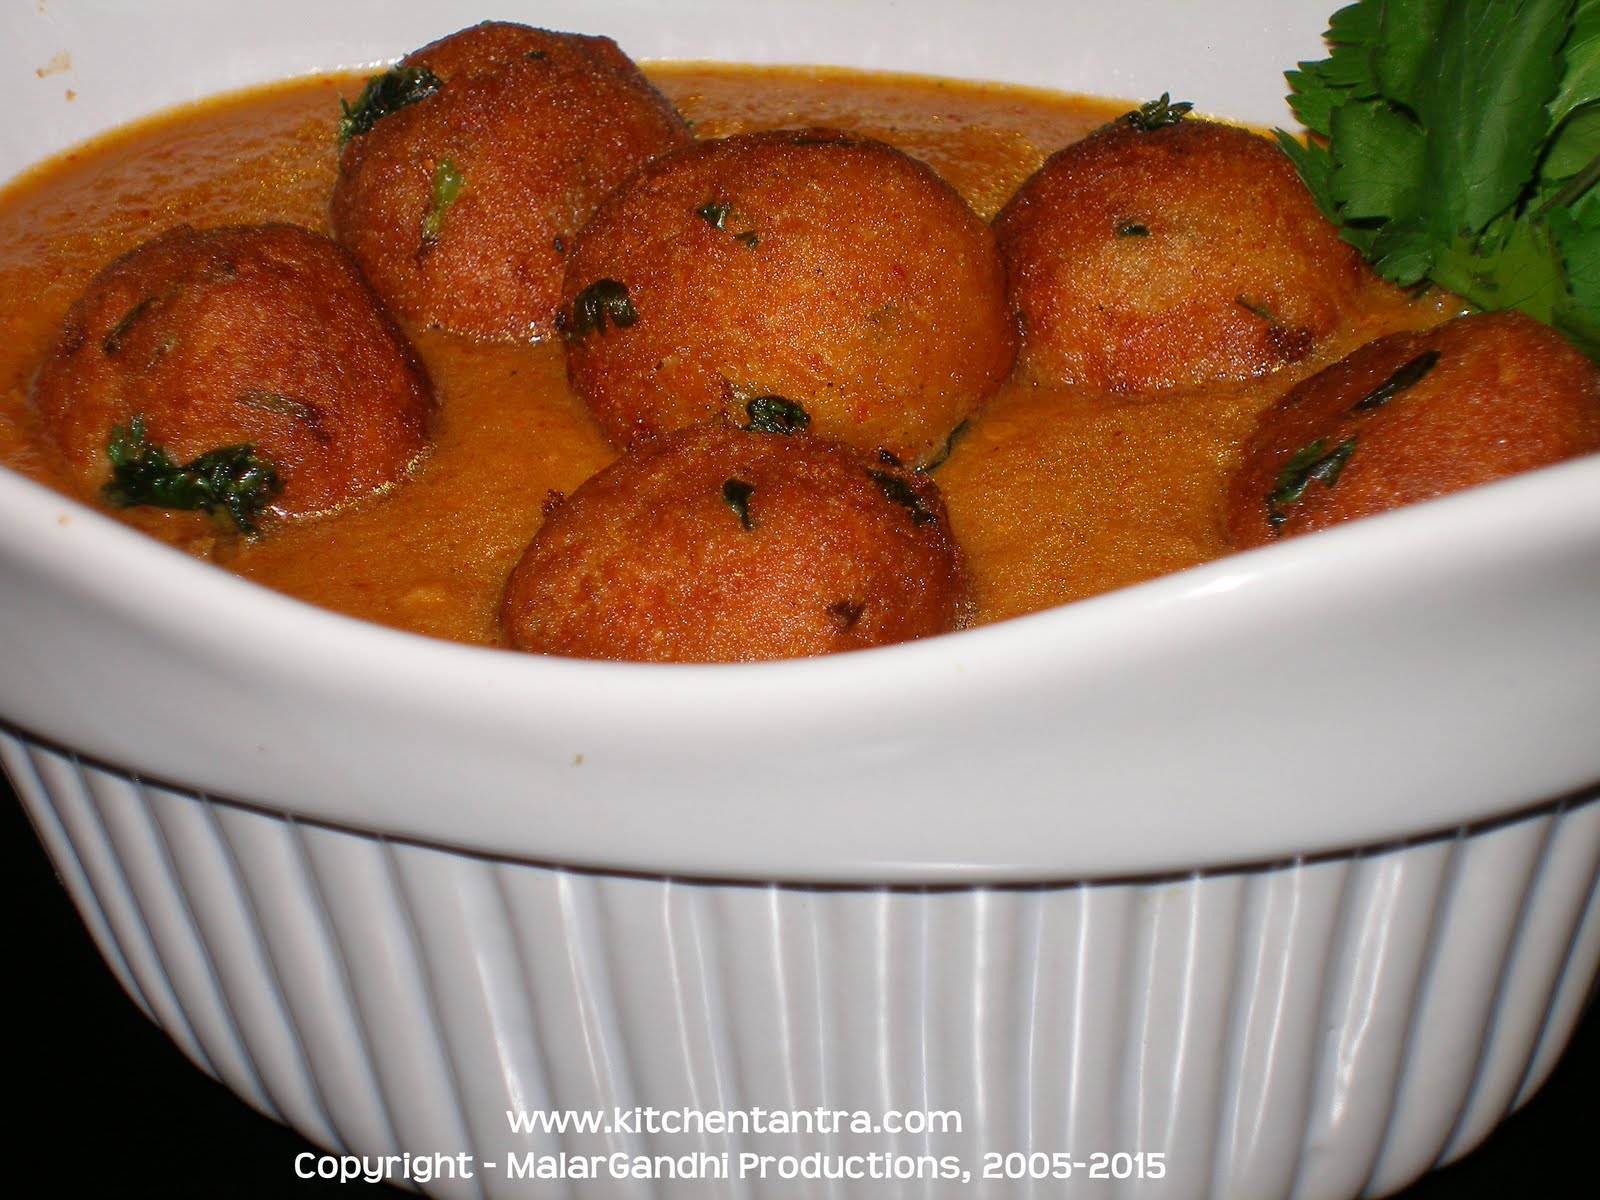 Curried Tomato And Brown Rice Soup With Fried Paneer Recipes ...